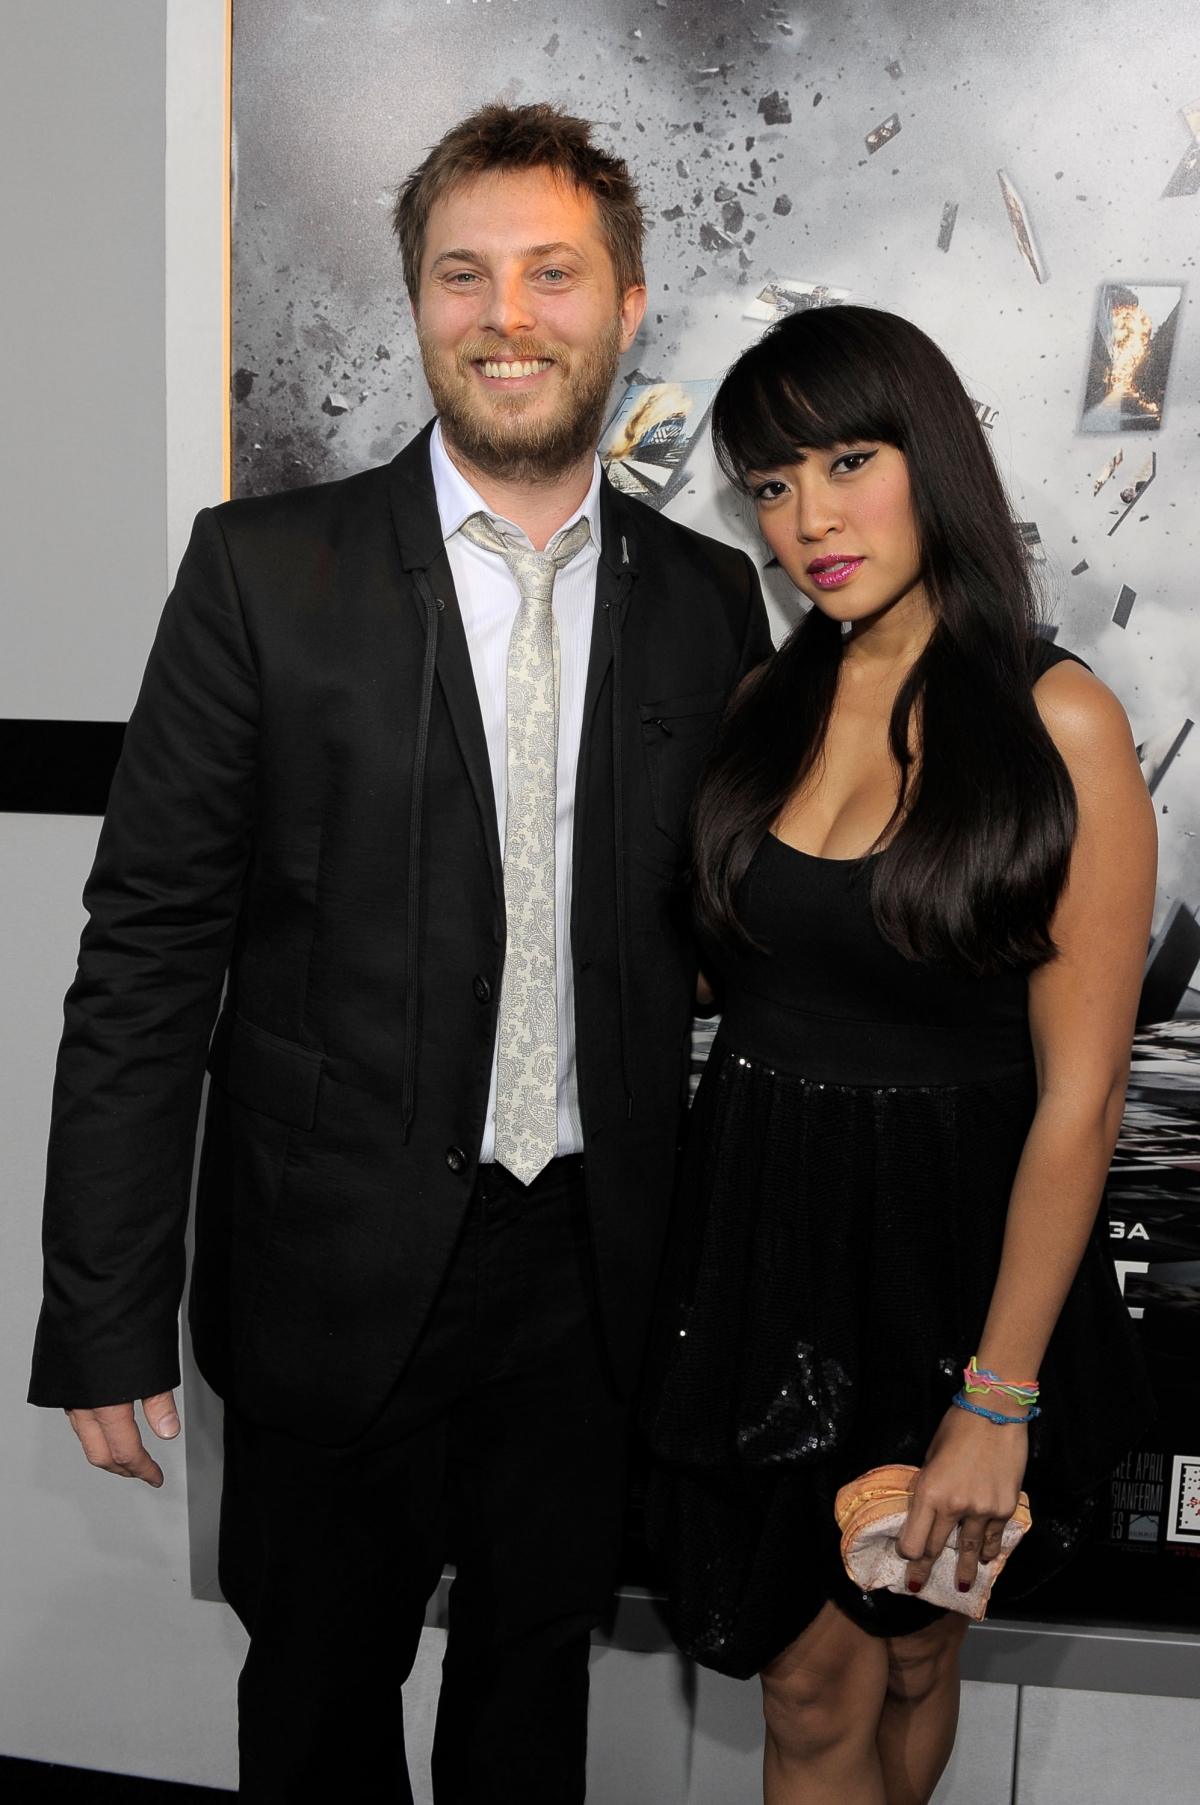 Duncan Jones and wife Rodene Ronquillo